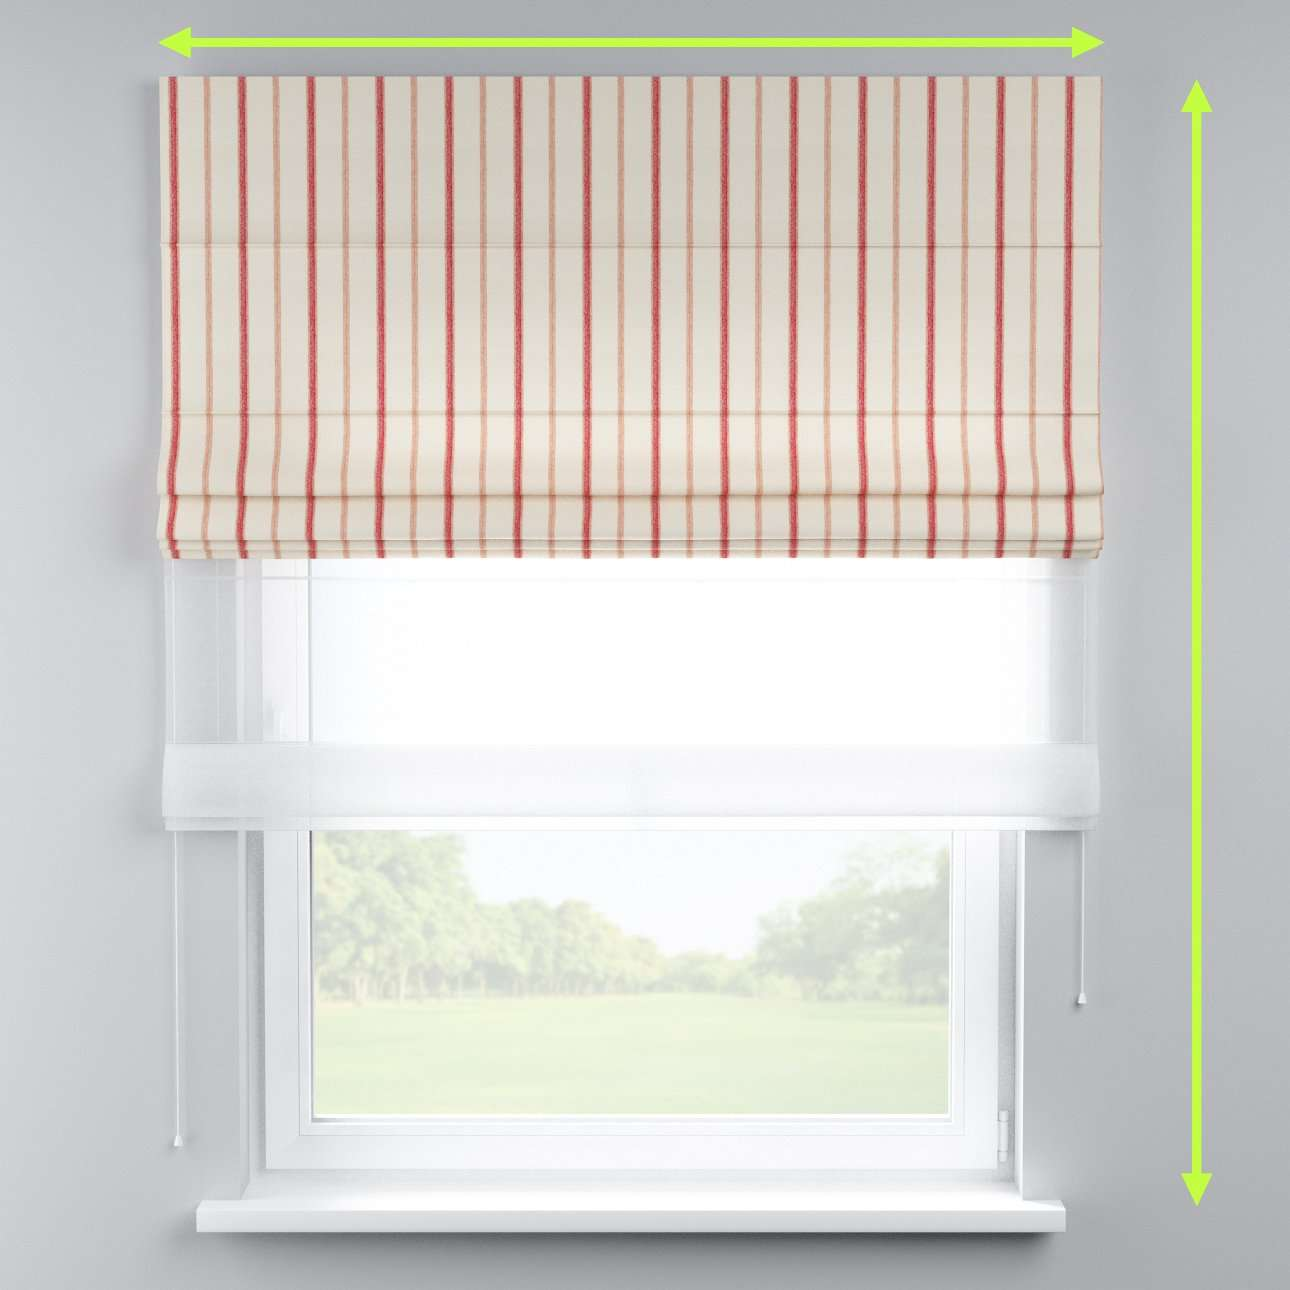 Voile and fabric roman blind (DUO II) in collection Avinon, fabric: 129-15